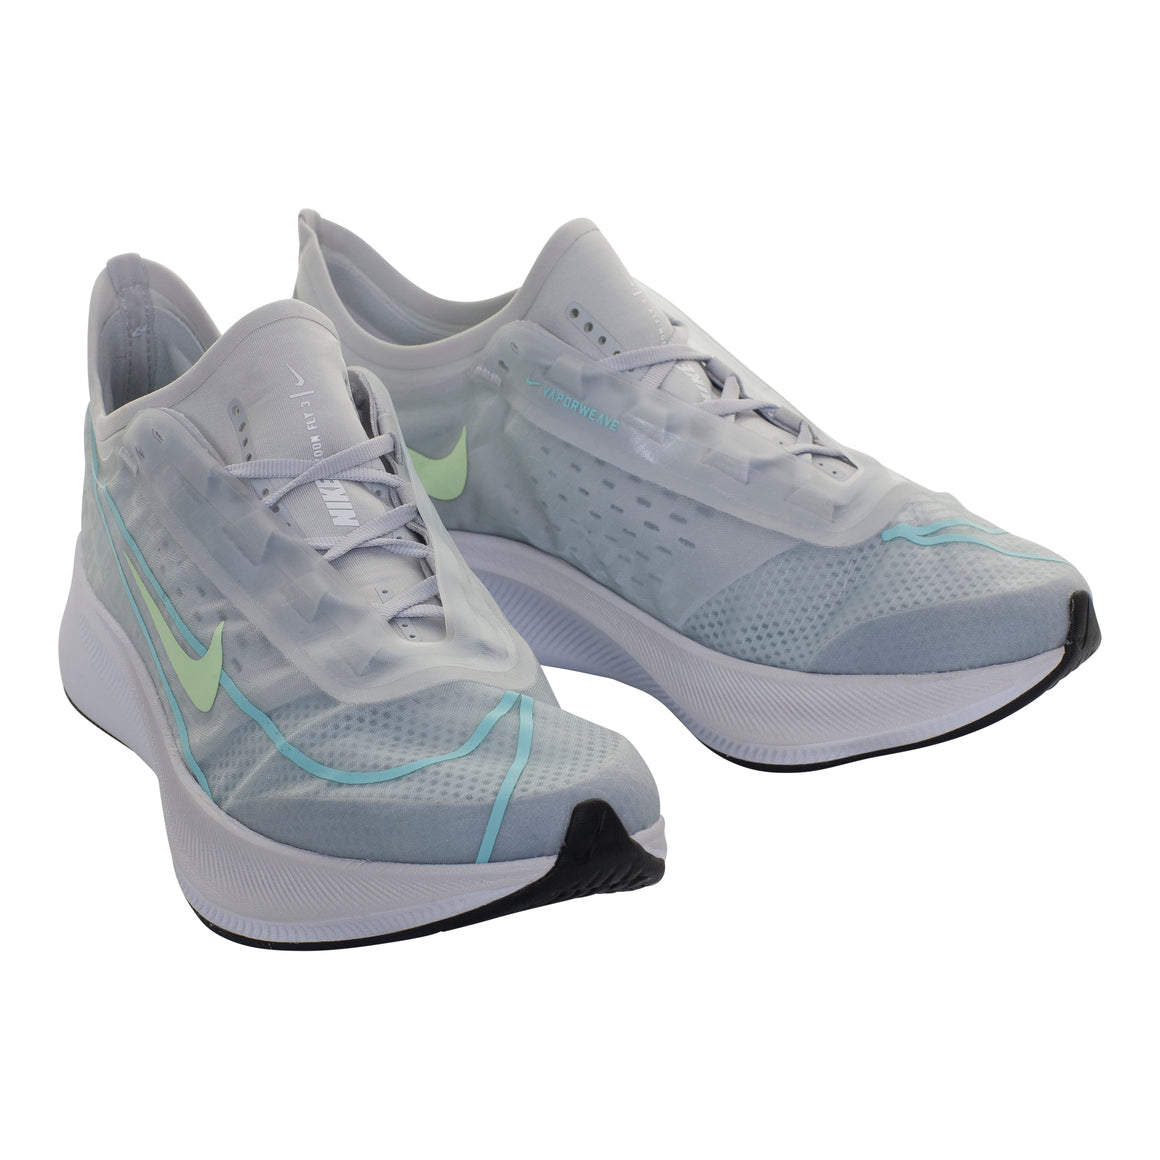 Zoom Fly 3 Running Shoe for Women in Pure Platinum/Barely Volt